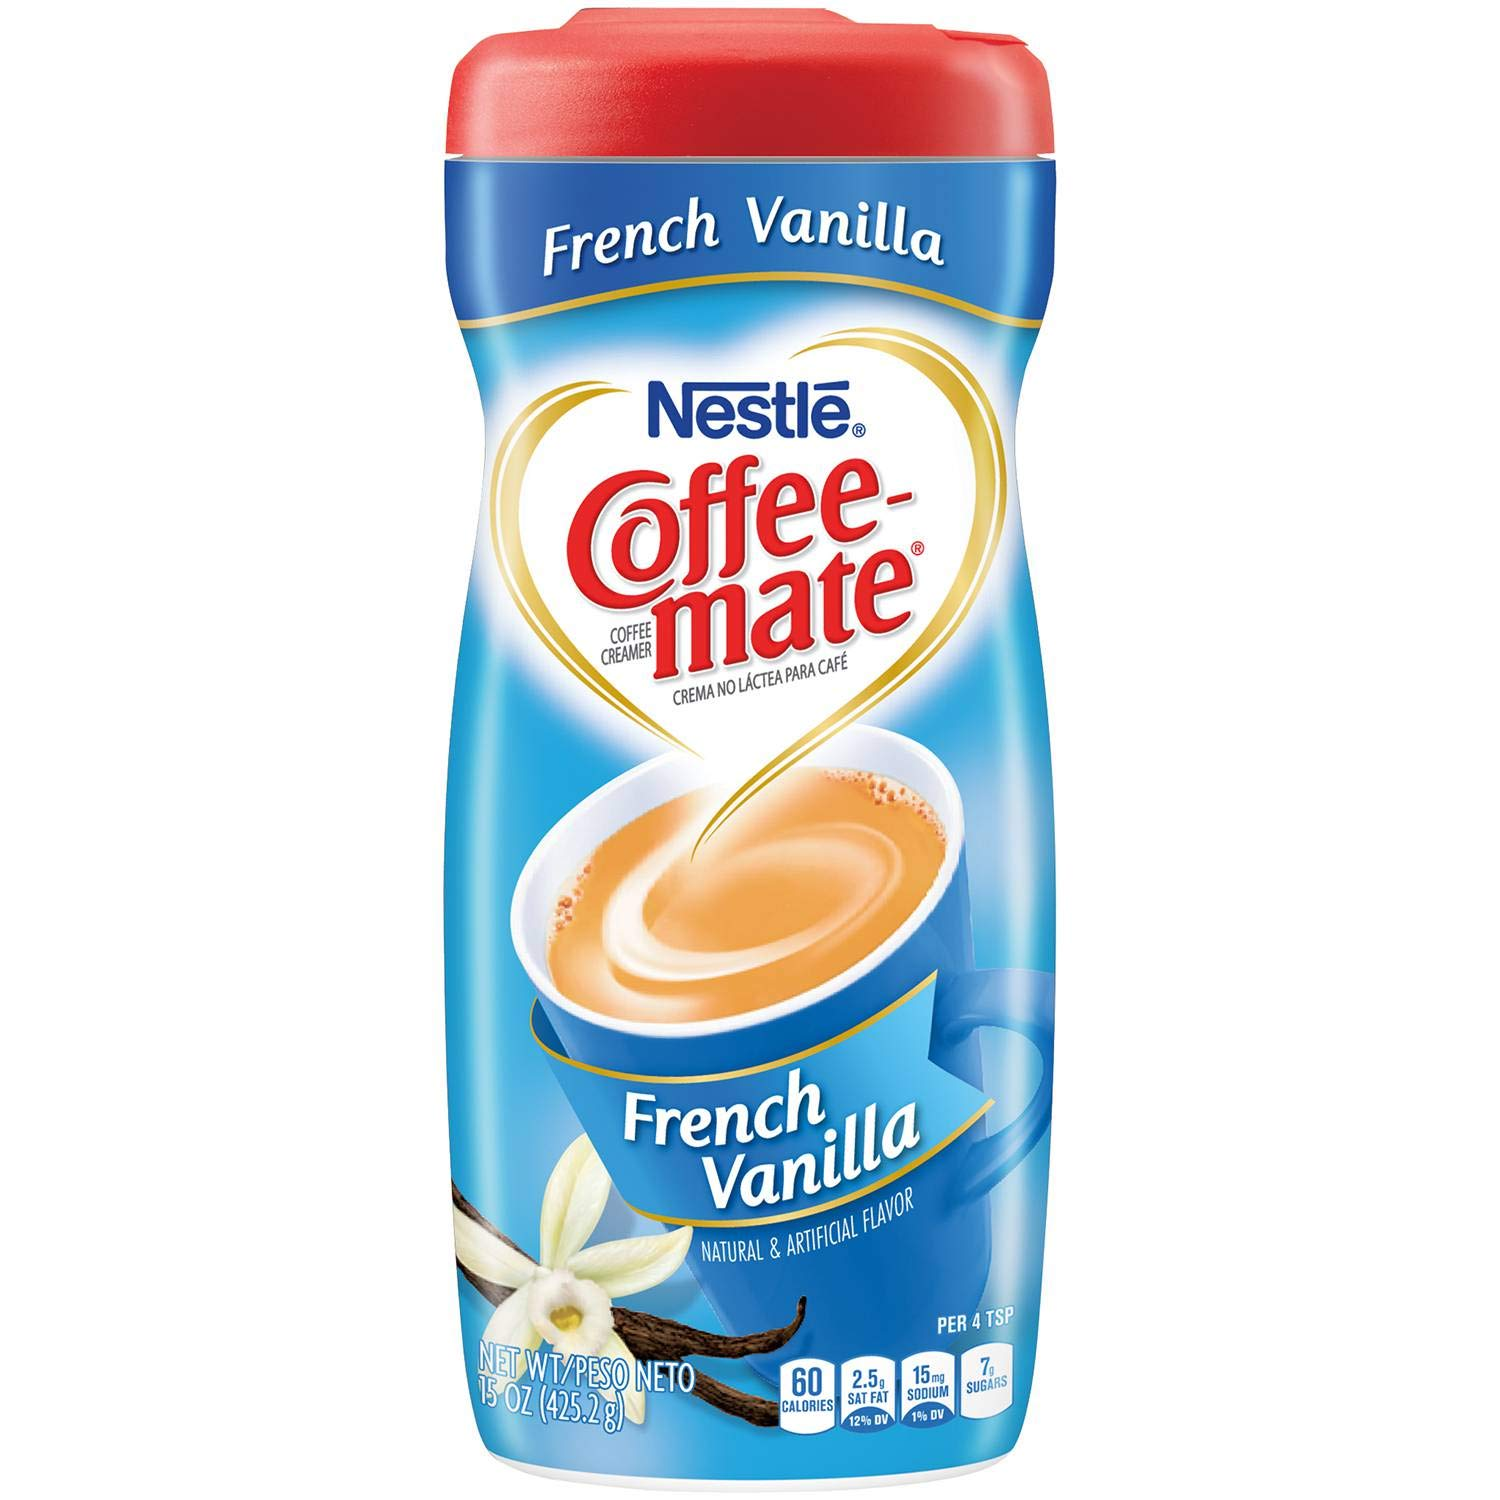 COFFEE MATE French Vanilla Powder Coffee Creamer 15 Oz. Canister | 6 Pack | Non-dairy, Lactose Free, Gluten Free Creamer